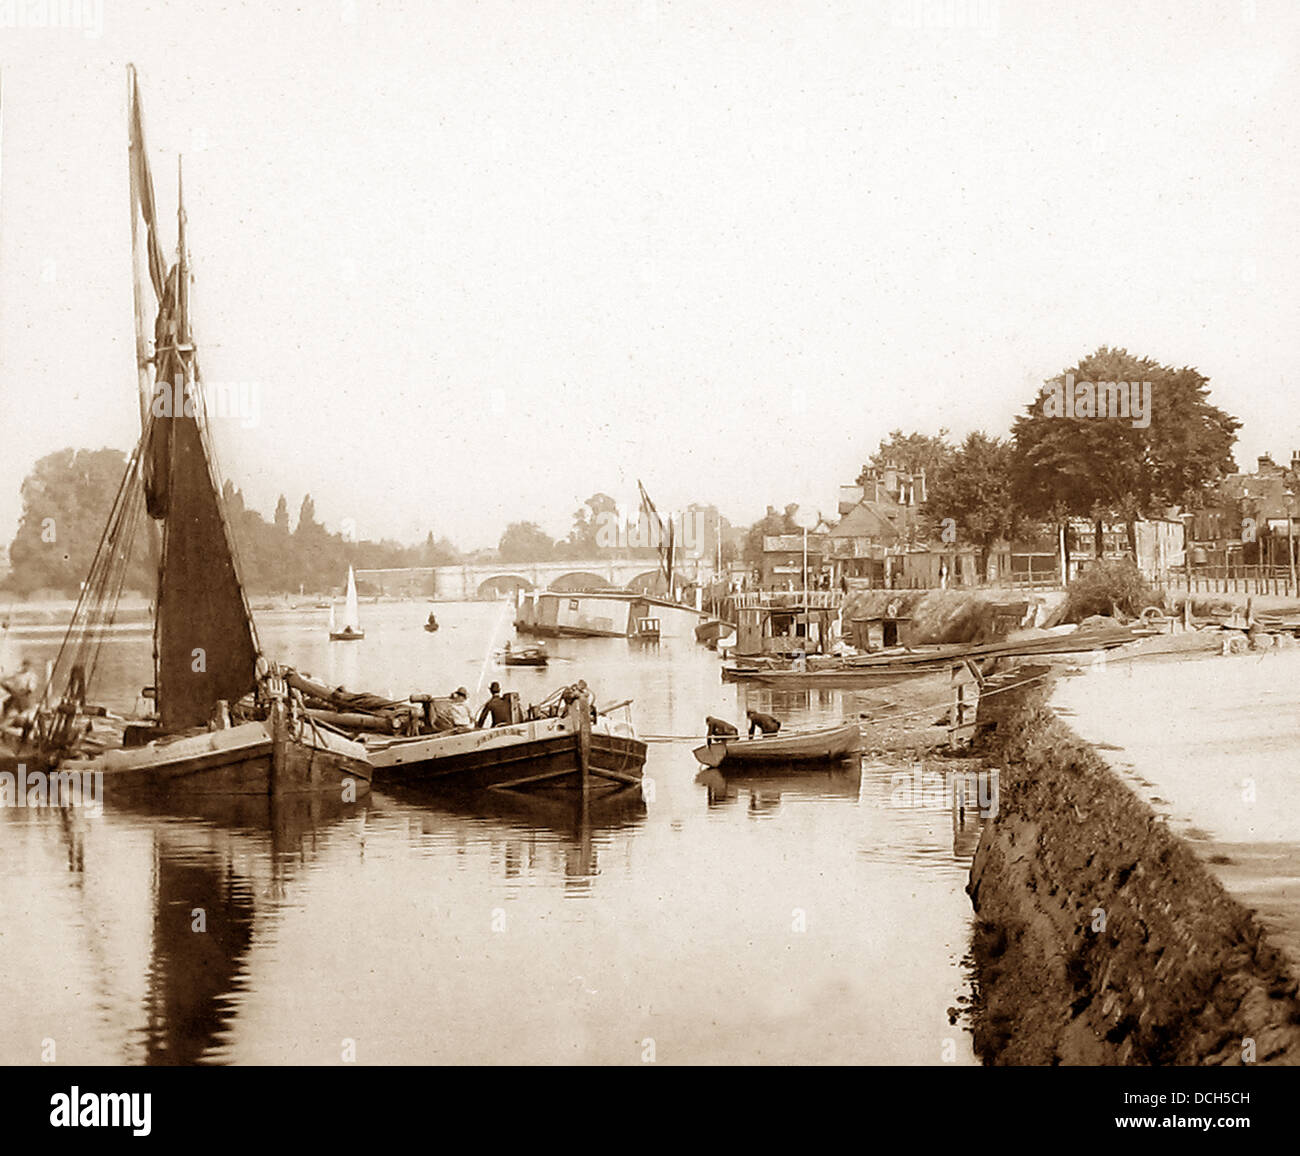 Kingston-on-Thames Victorian period - Stock Image